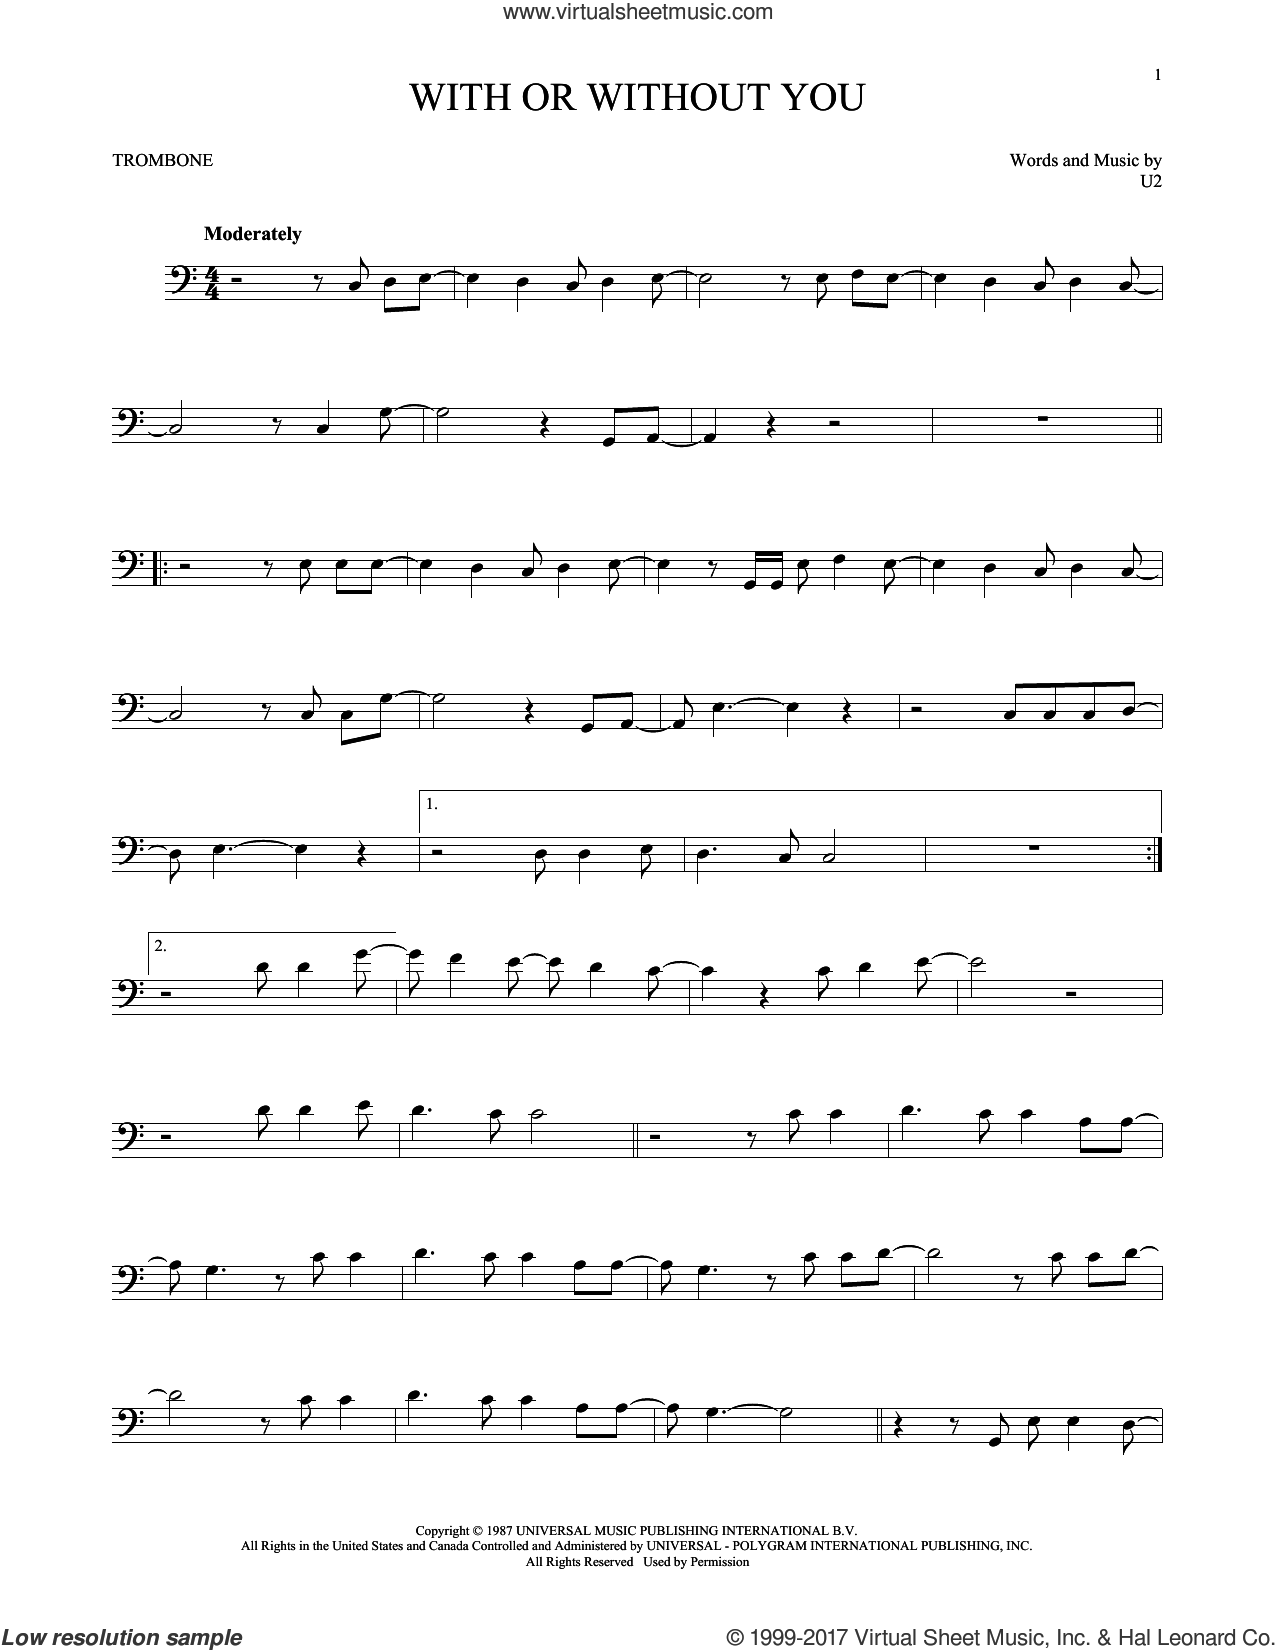 With Or Without You sheet music for trombone solo by U2, intermediate skill level